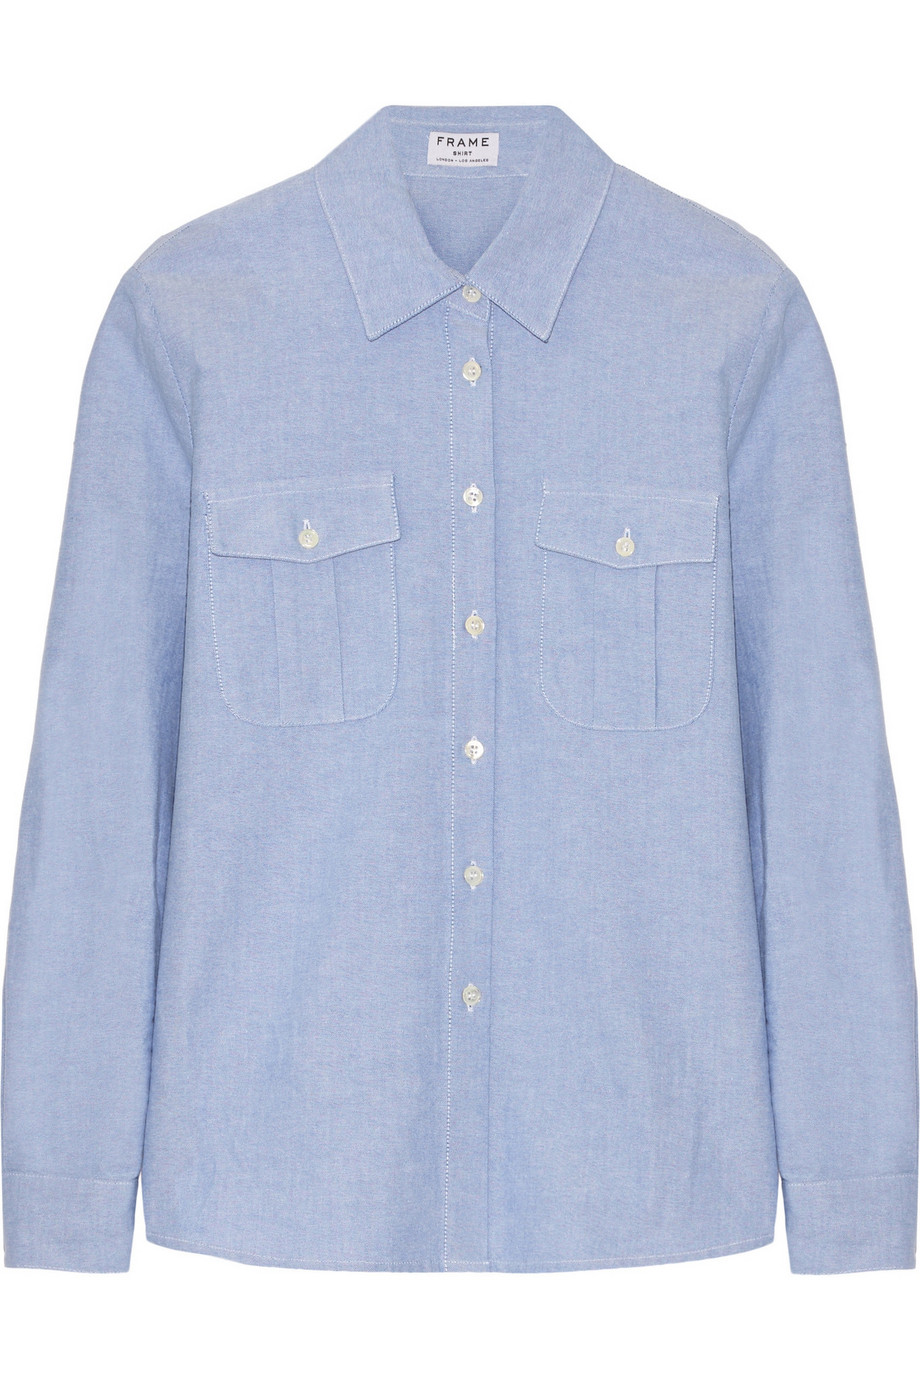 Frame Denim Le Boyfriend Cotton Shirt, Light Blue, Women's